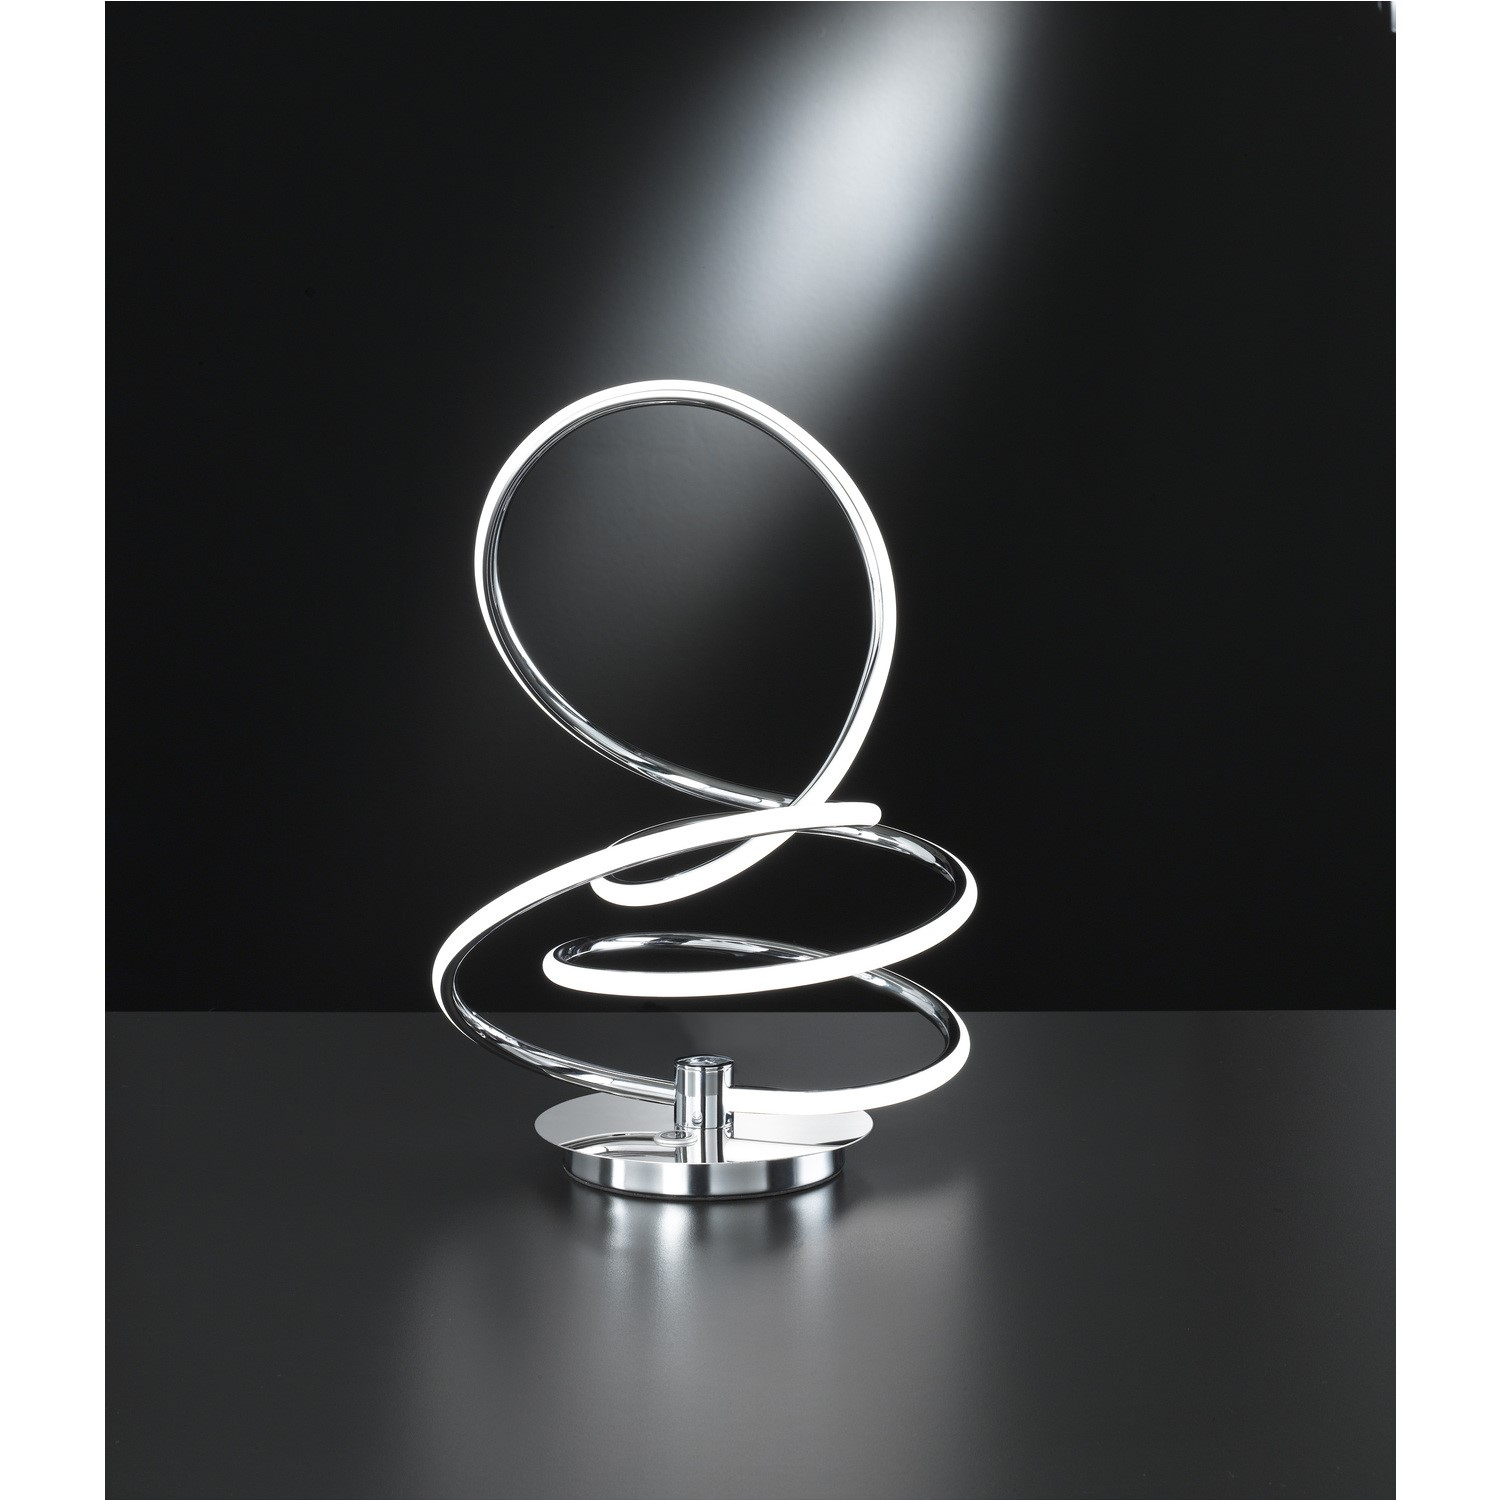 Picture of: Led Table Lamp With Chrome Twist Design Soller Furniture123